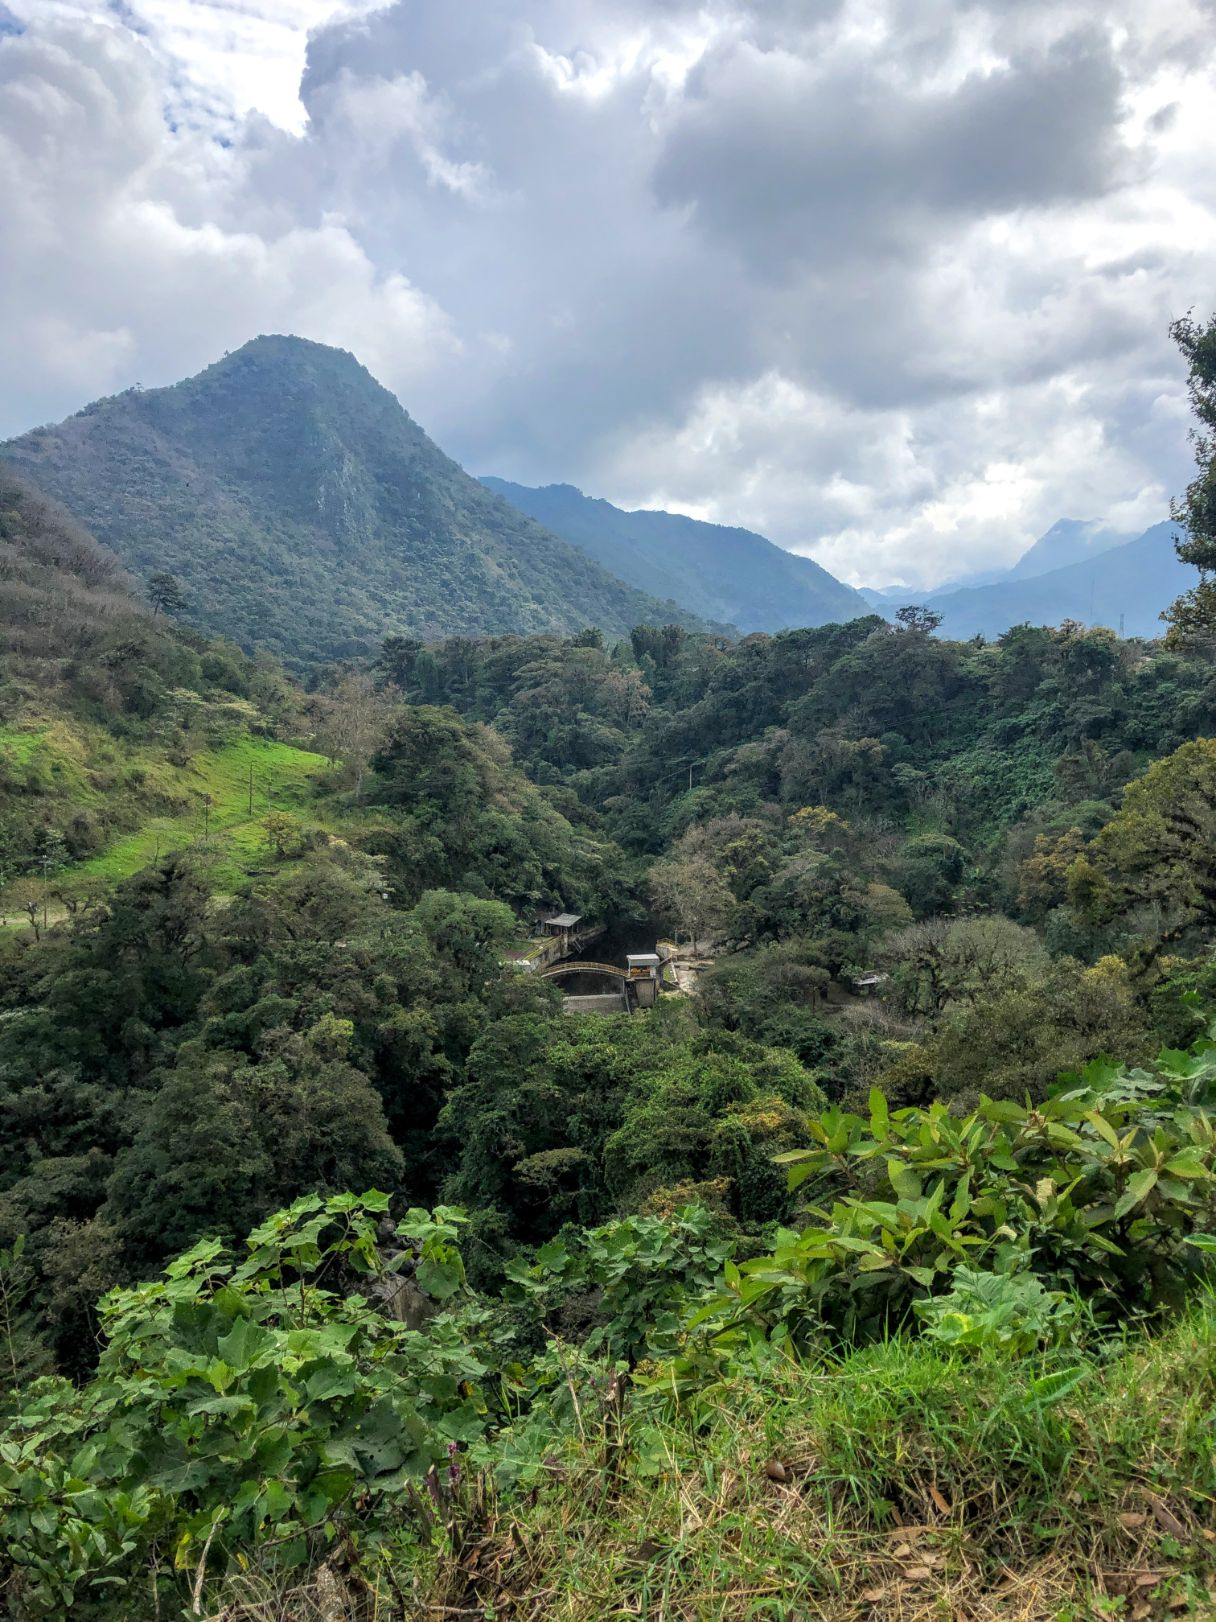 lush green forest and mountain in Orizaba from a distance